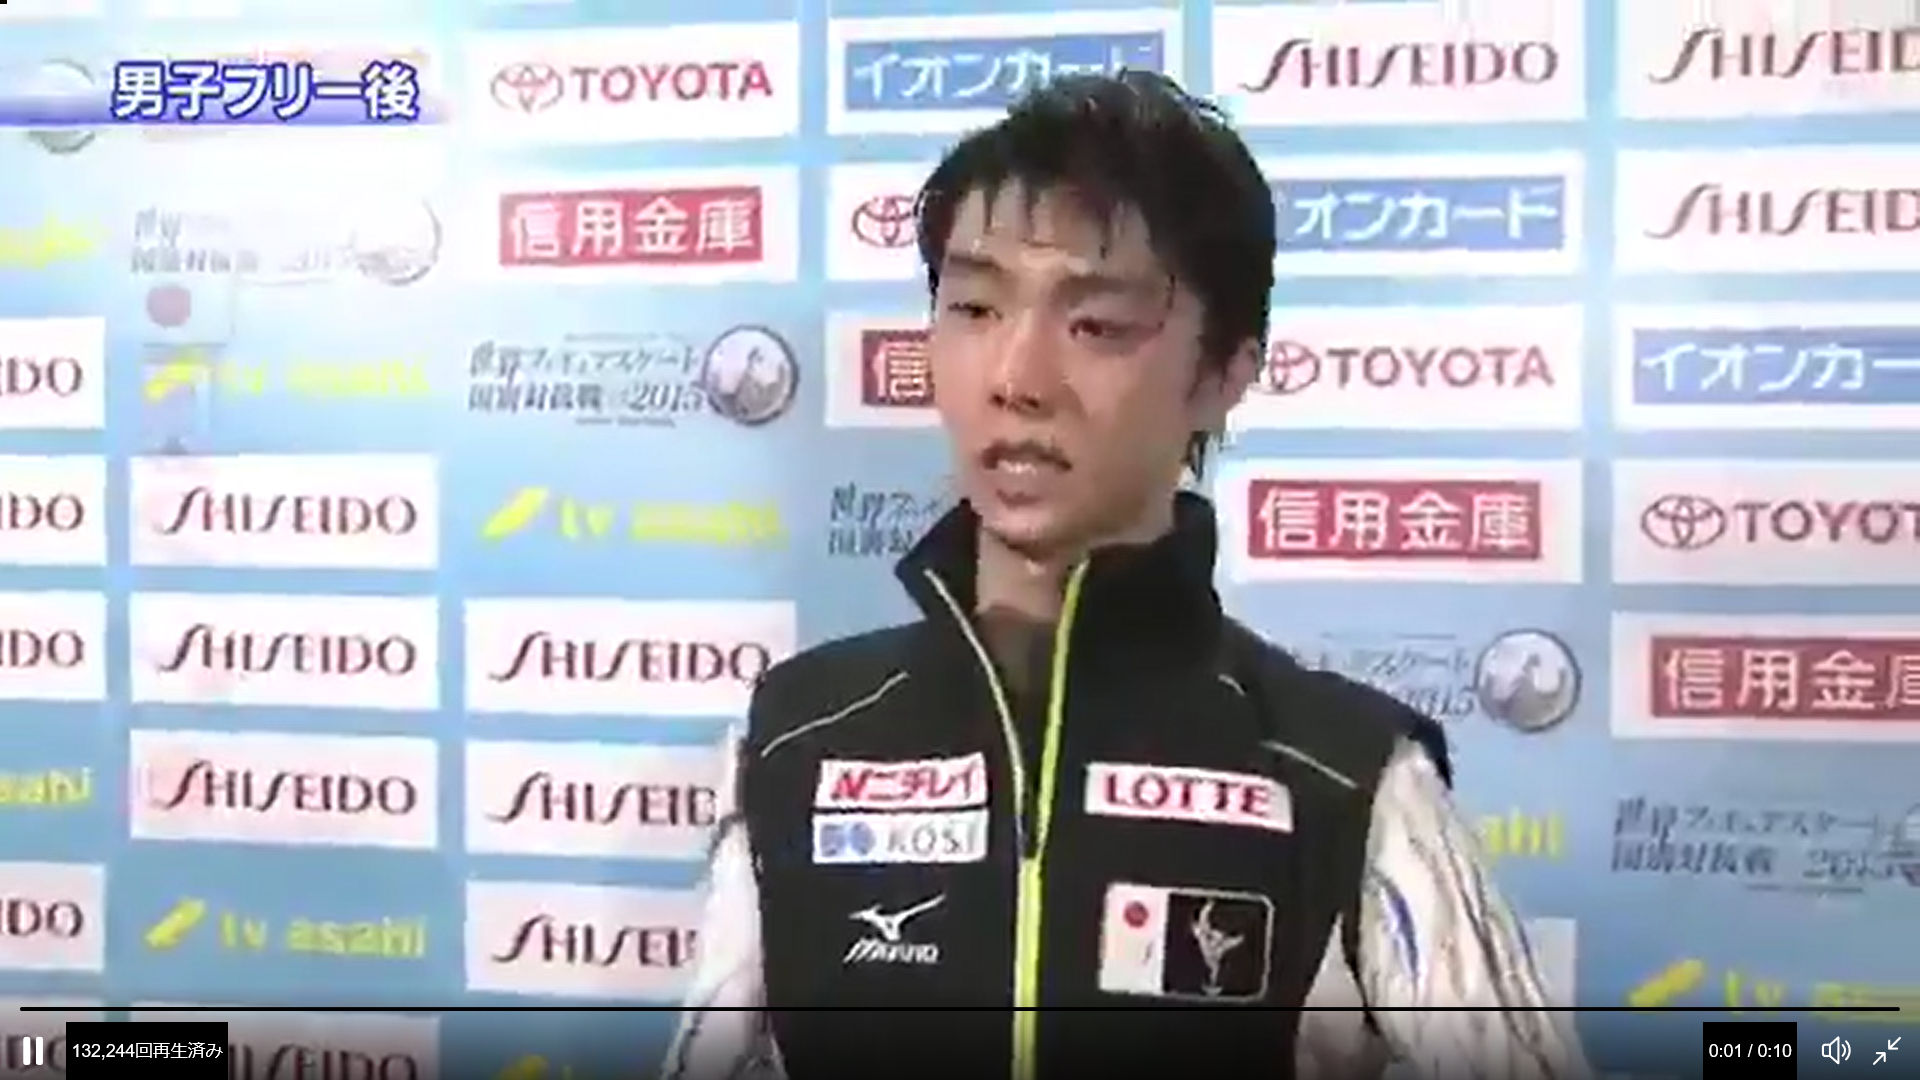 このわずかな瞬間に人柄が出る羽生結弦選手